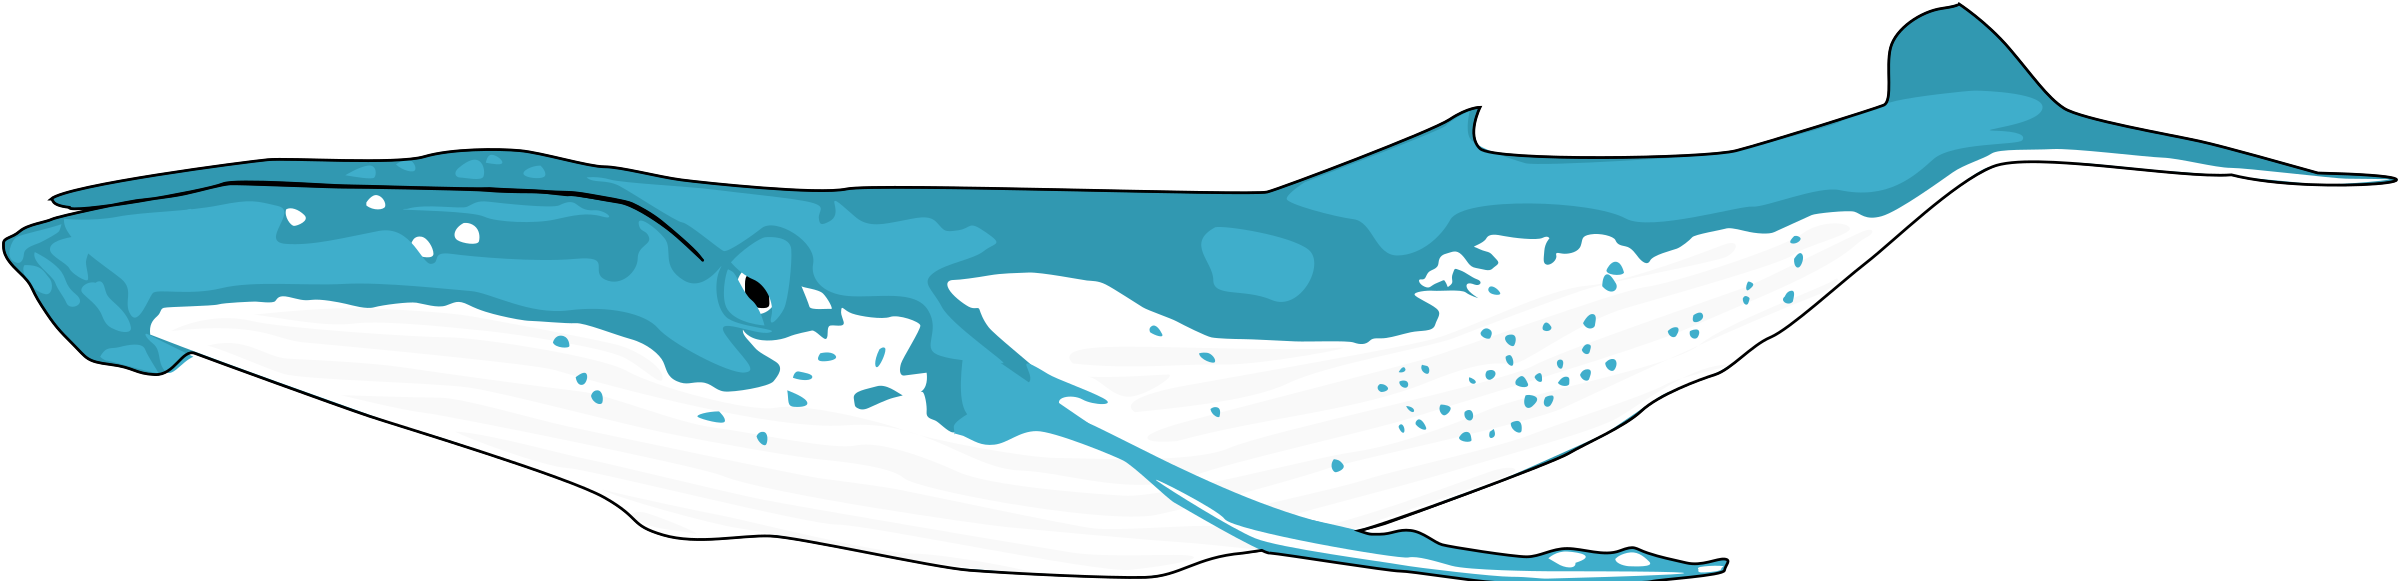 Blue Whale clipart whaling Humpback Clipart whale humpback whale